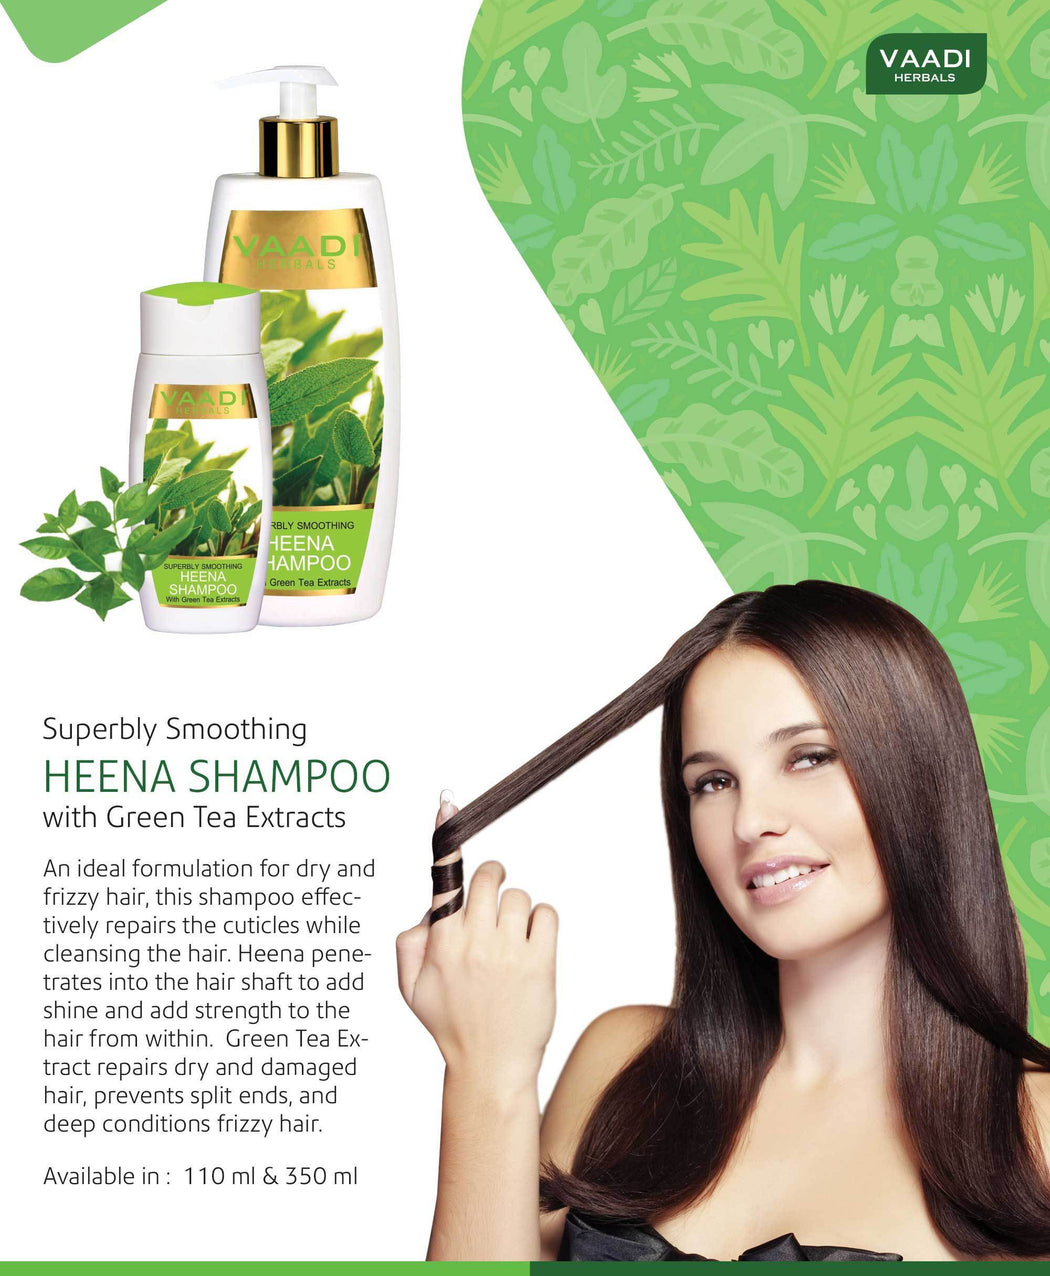 Superbly Smoothing Organic Heena Shampoo with Green Tea Extract - Controls Dry Frizzy Hair - Strengthens Hair (3 x 110 ml/4 fl oz)